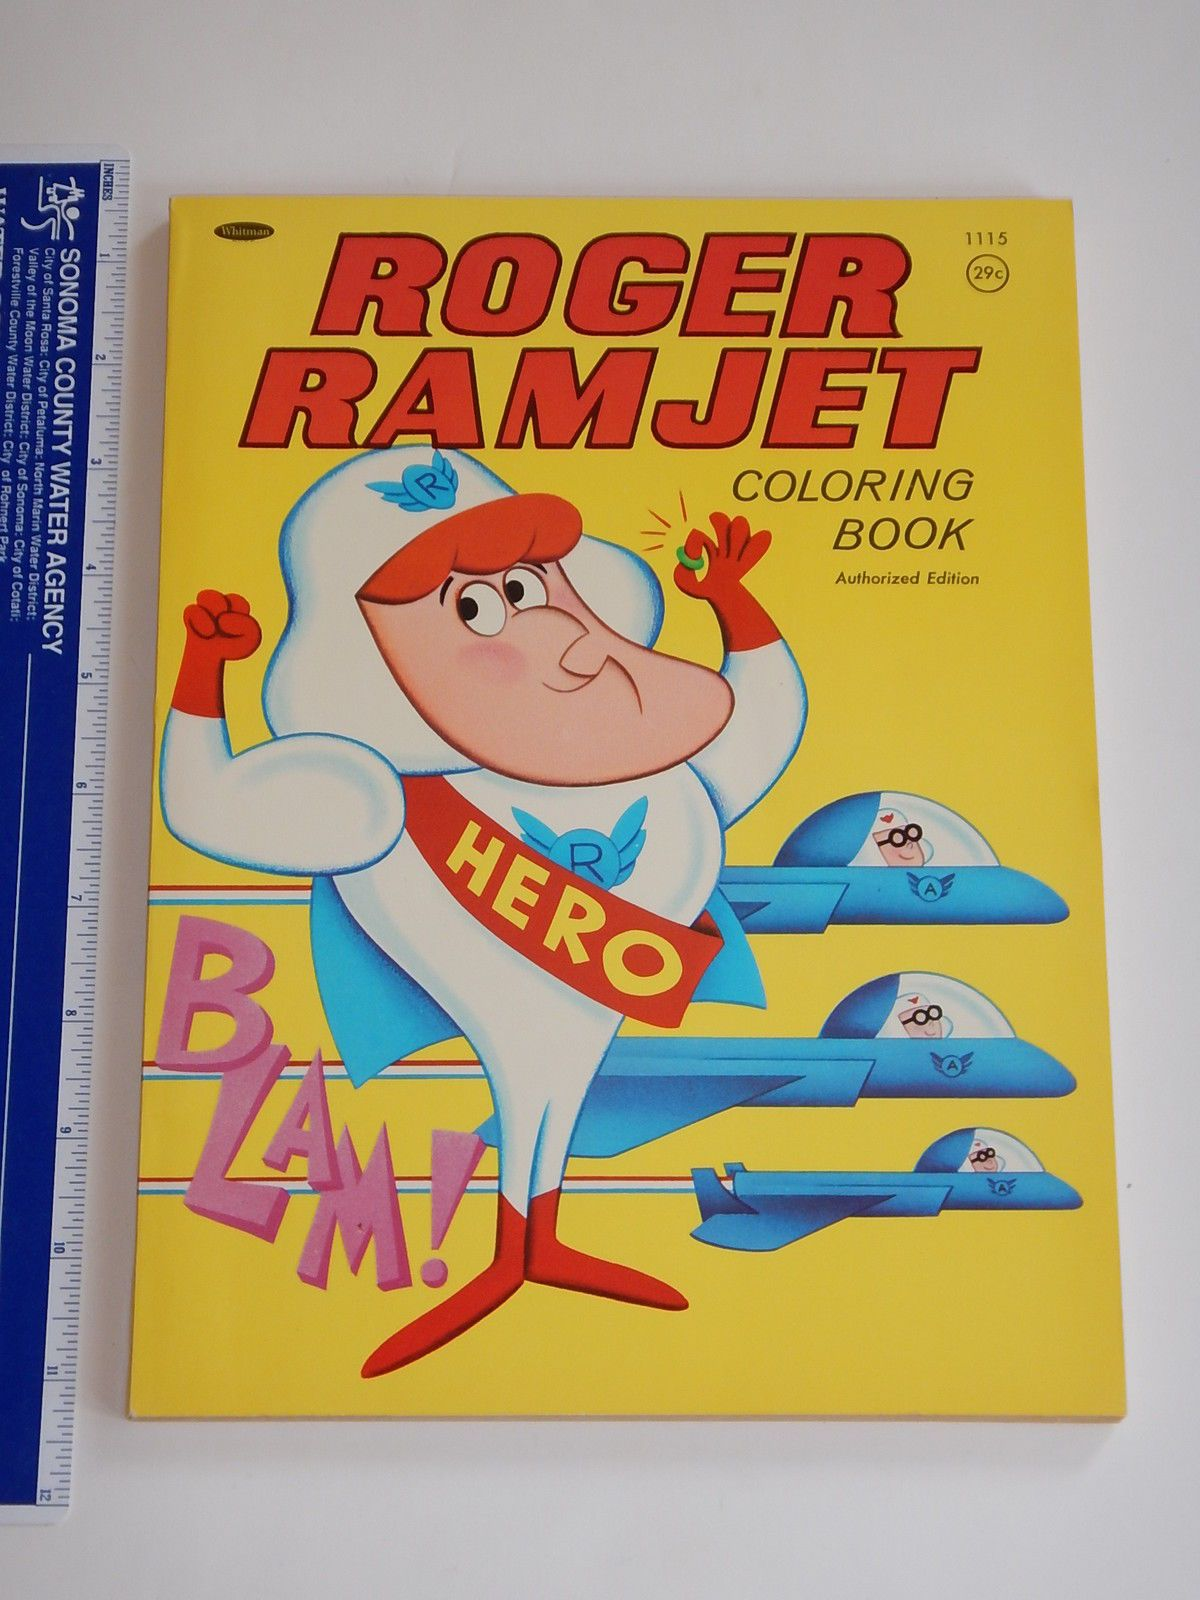 RARE 1966 Roger Ramjet Whitman Coloring Book Unused